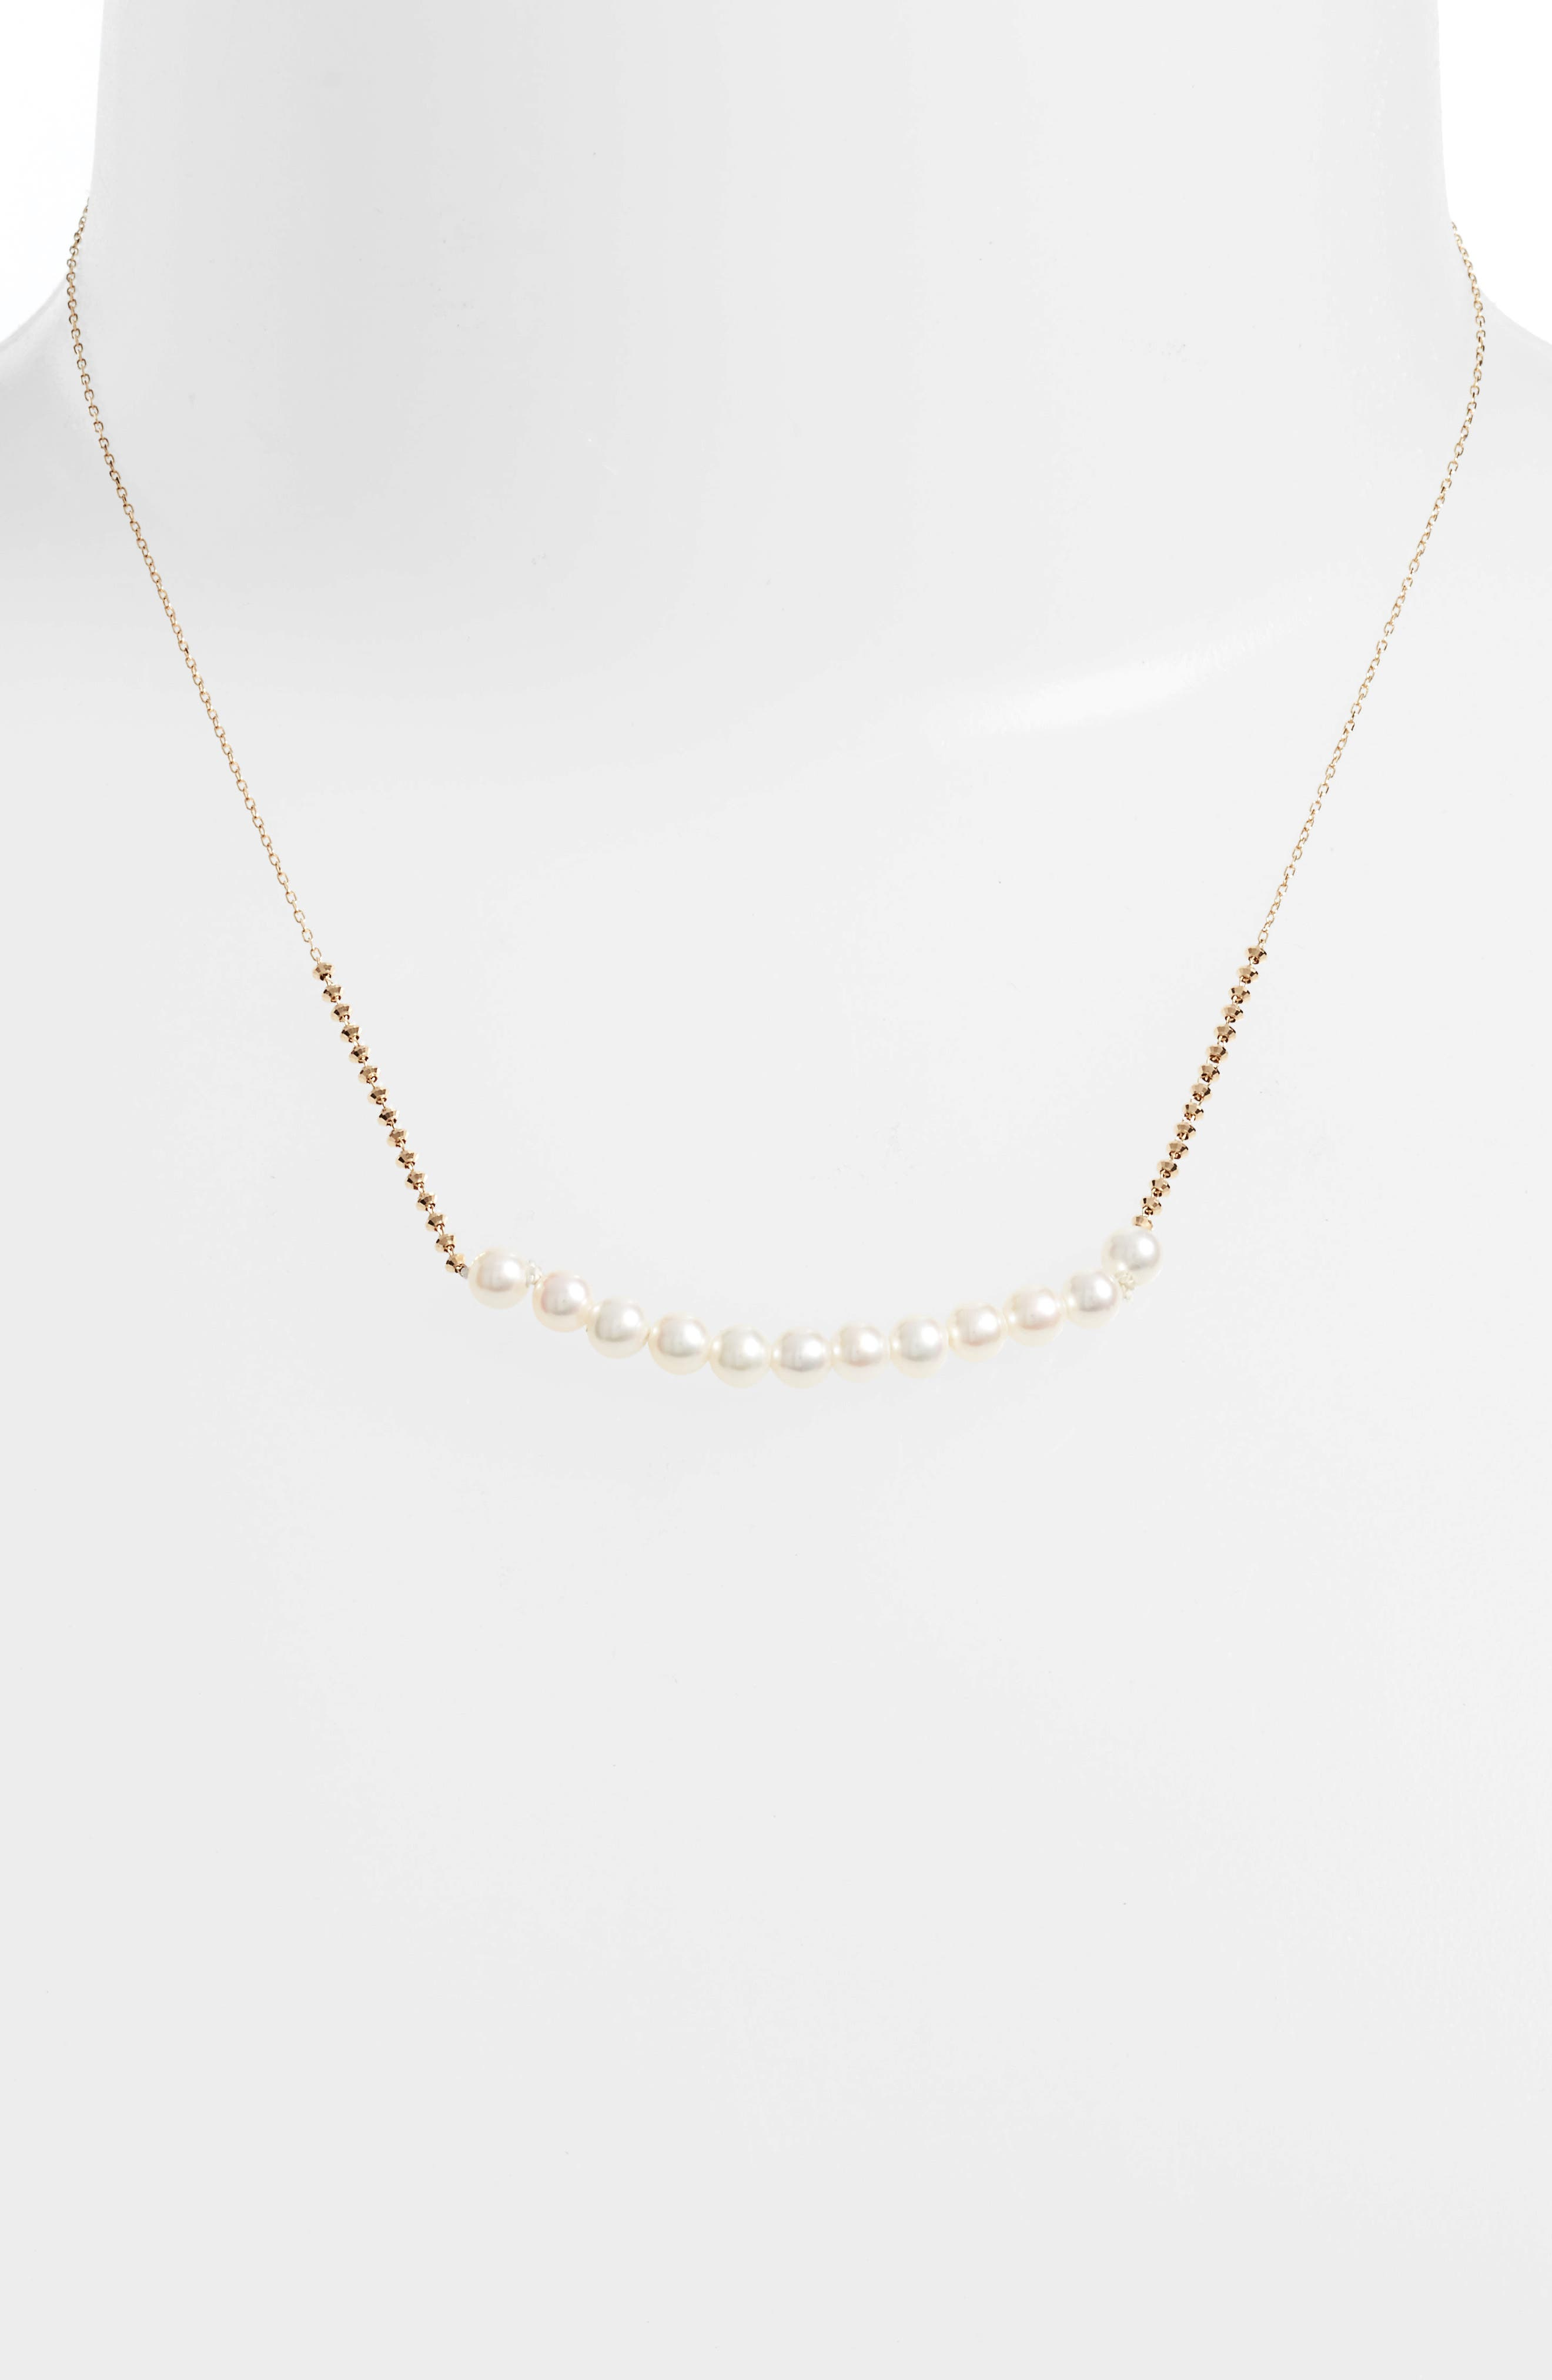 Beaded Pearl Necklace,                             Alternate thumbnail 2, color,                             YELLOW GOLD/ WHITE PEARL